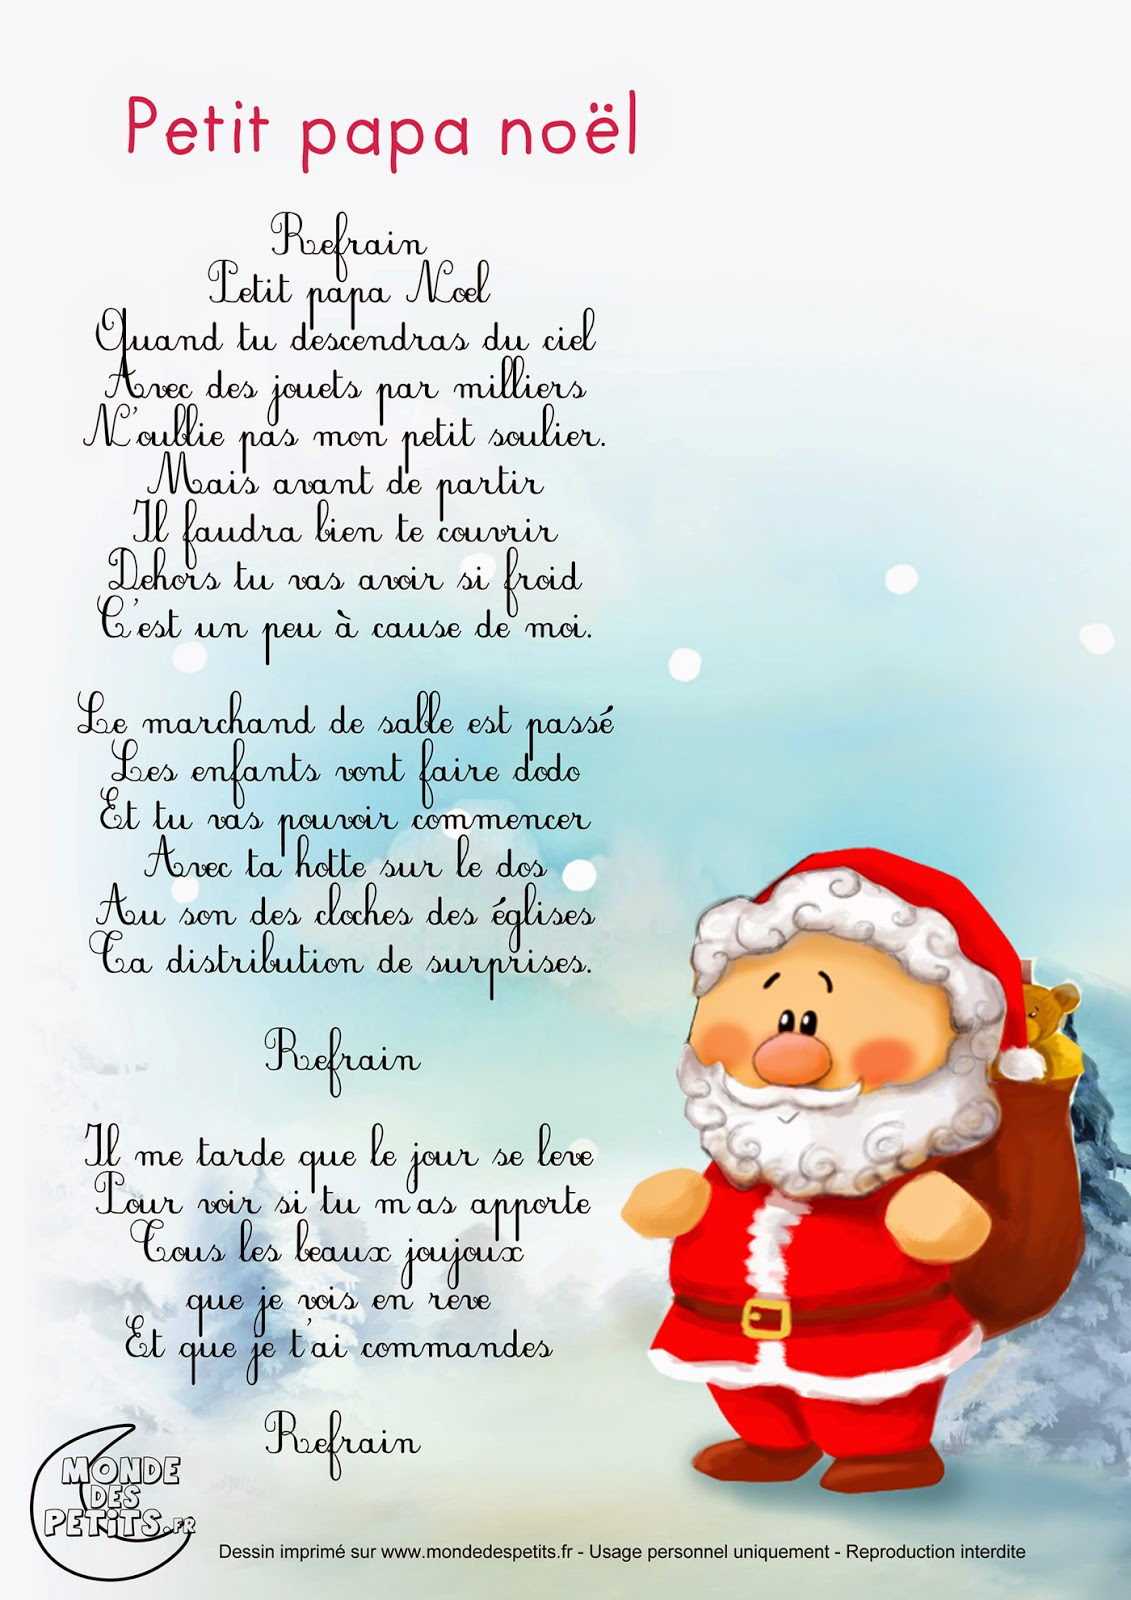 Learn&play - Histoires De Pompoms Wish You A Merry Christmas intérieur Papa Noel Parole